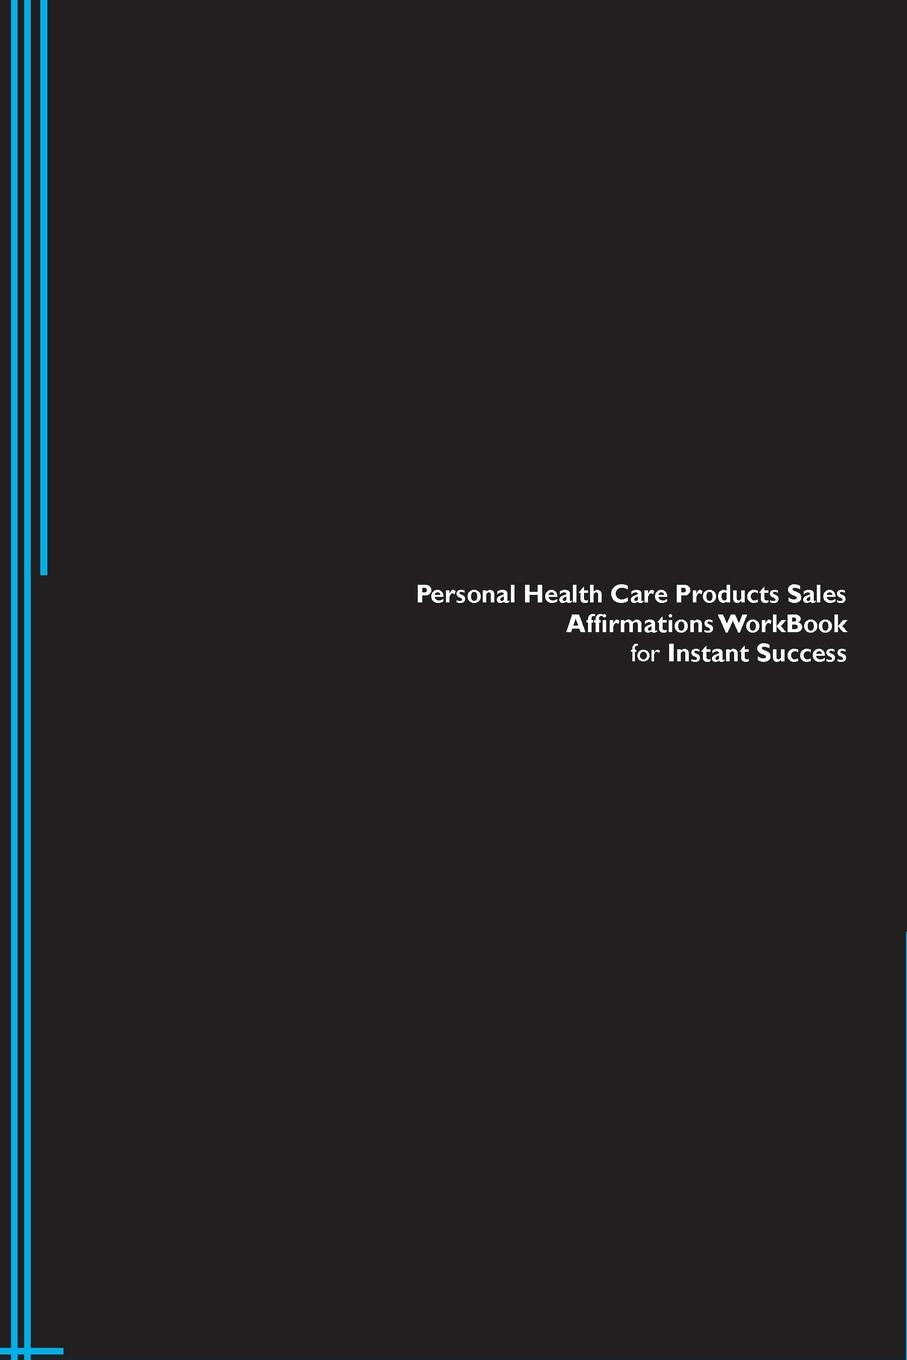 Success Experts Personal Health Care Products Sales Affirmations Workbook for Instant Success. Personal Health Care Products Sales Positive . Empowering Affirmations Workbook. Includes. Personal Health Care Products Sales Subliminal Empowerment. 100% positive health glucosamine chondroitin sulfate high strength joint support pain relaxation